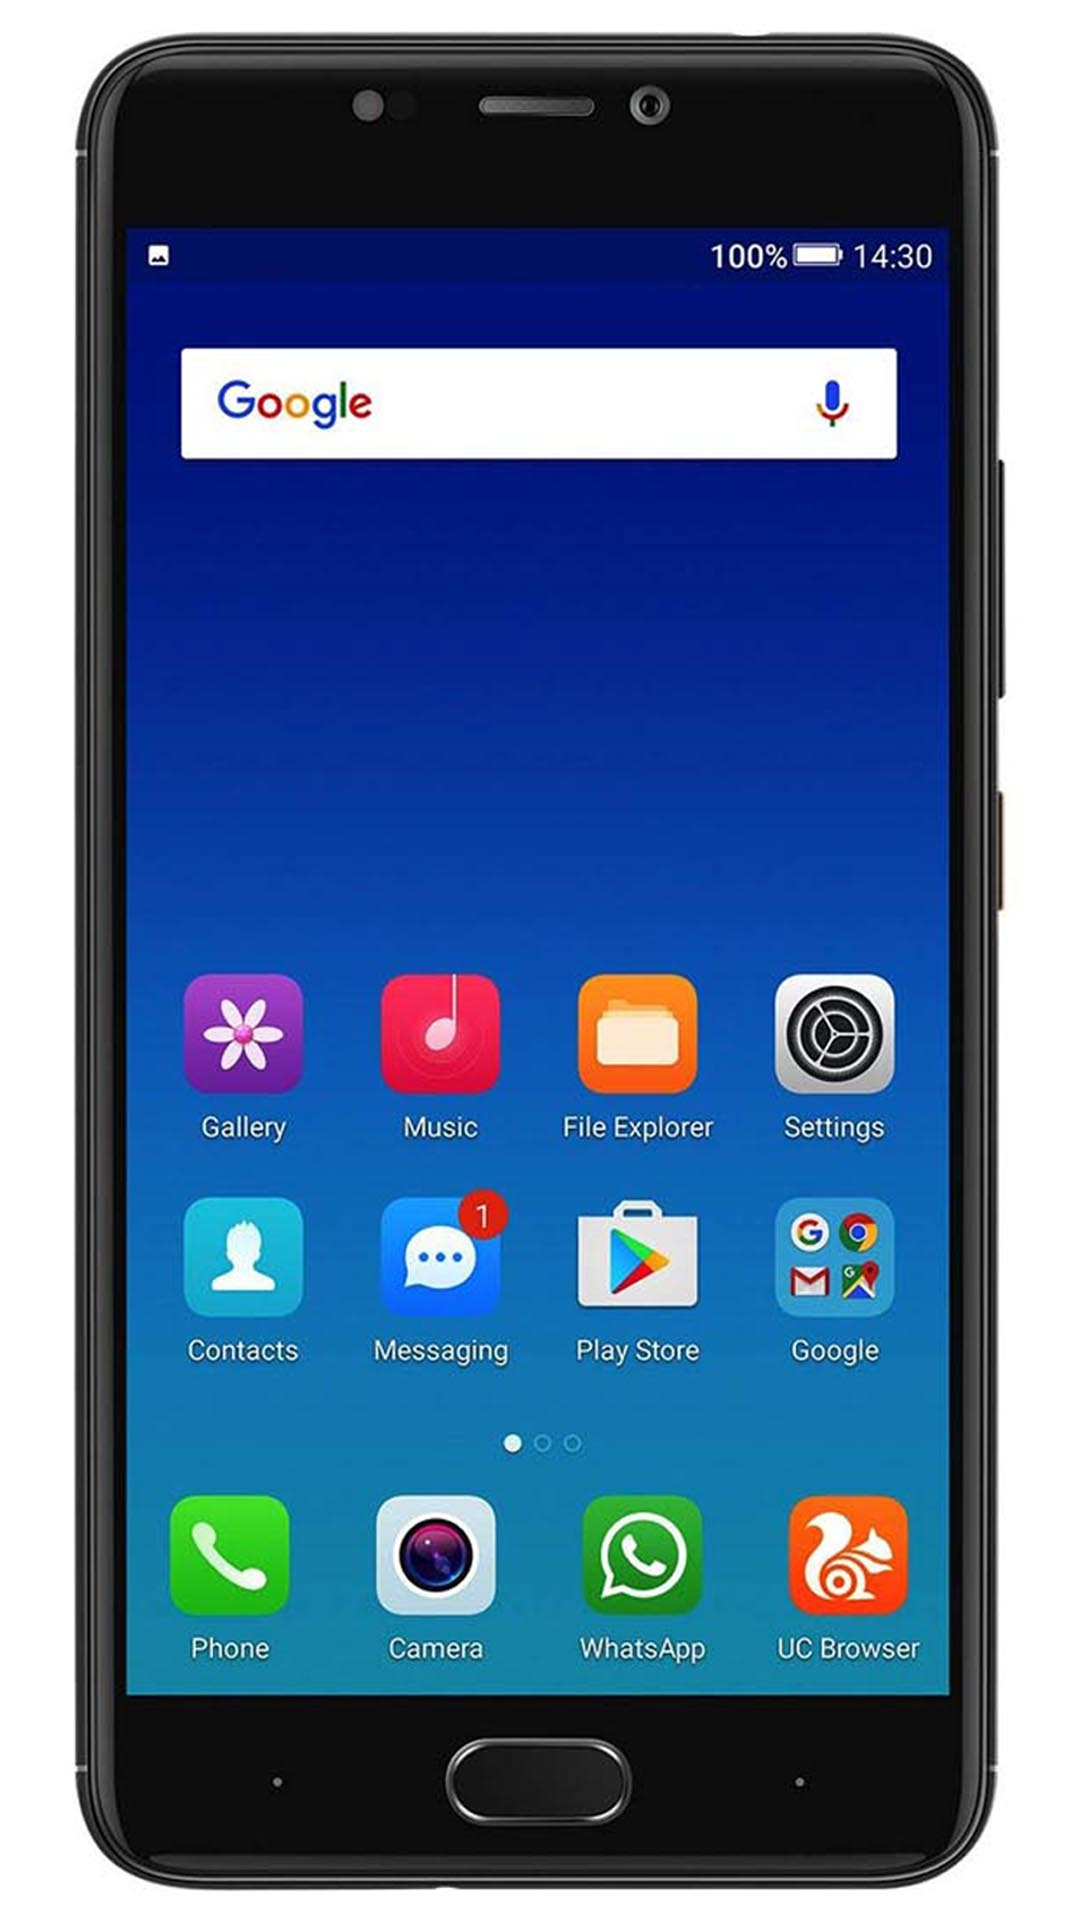 https://assetscdn1.paytm.com/images/catalog/product/M/MO/MOBGIONEE-A1-64CELL4514676595AC6/6.jpg